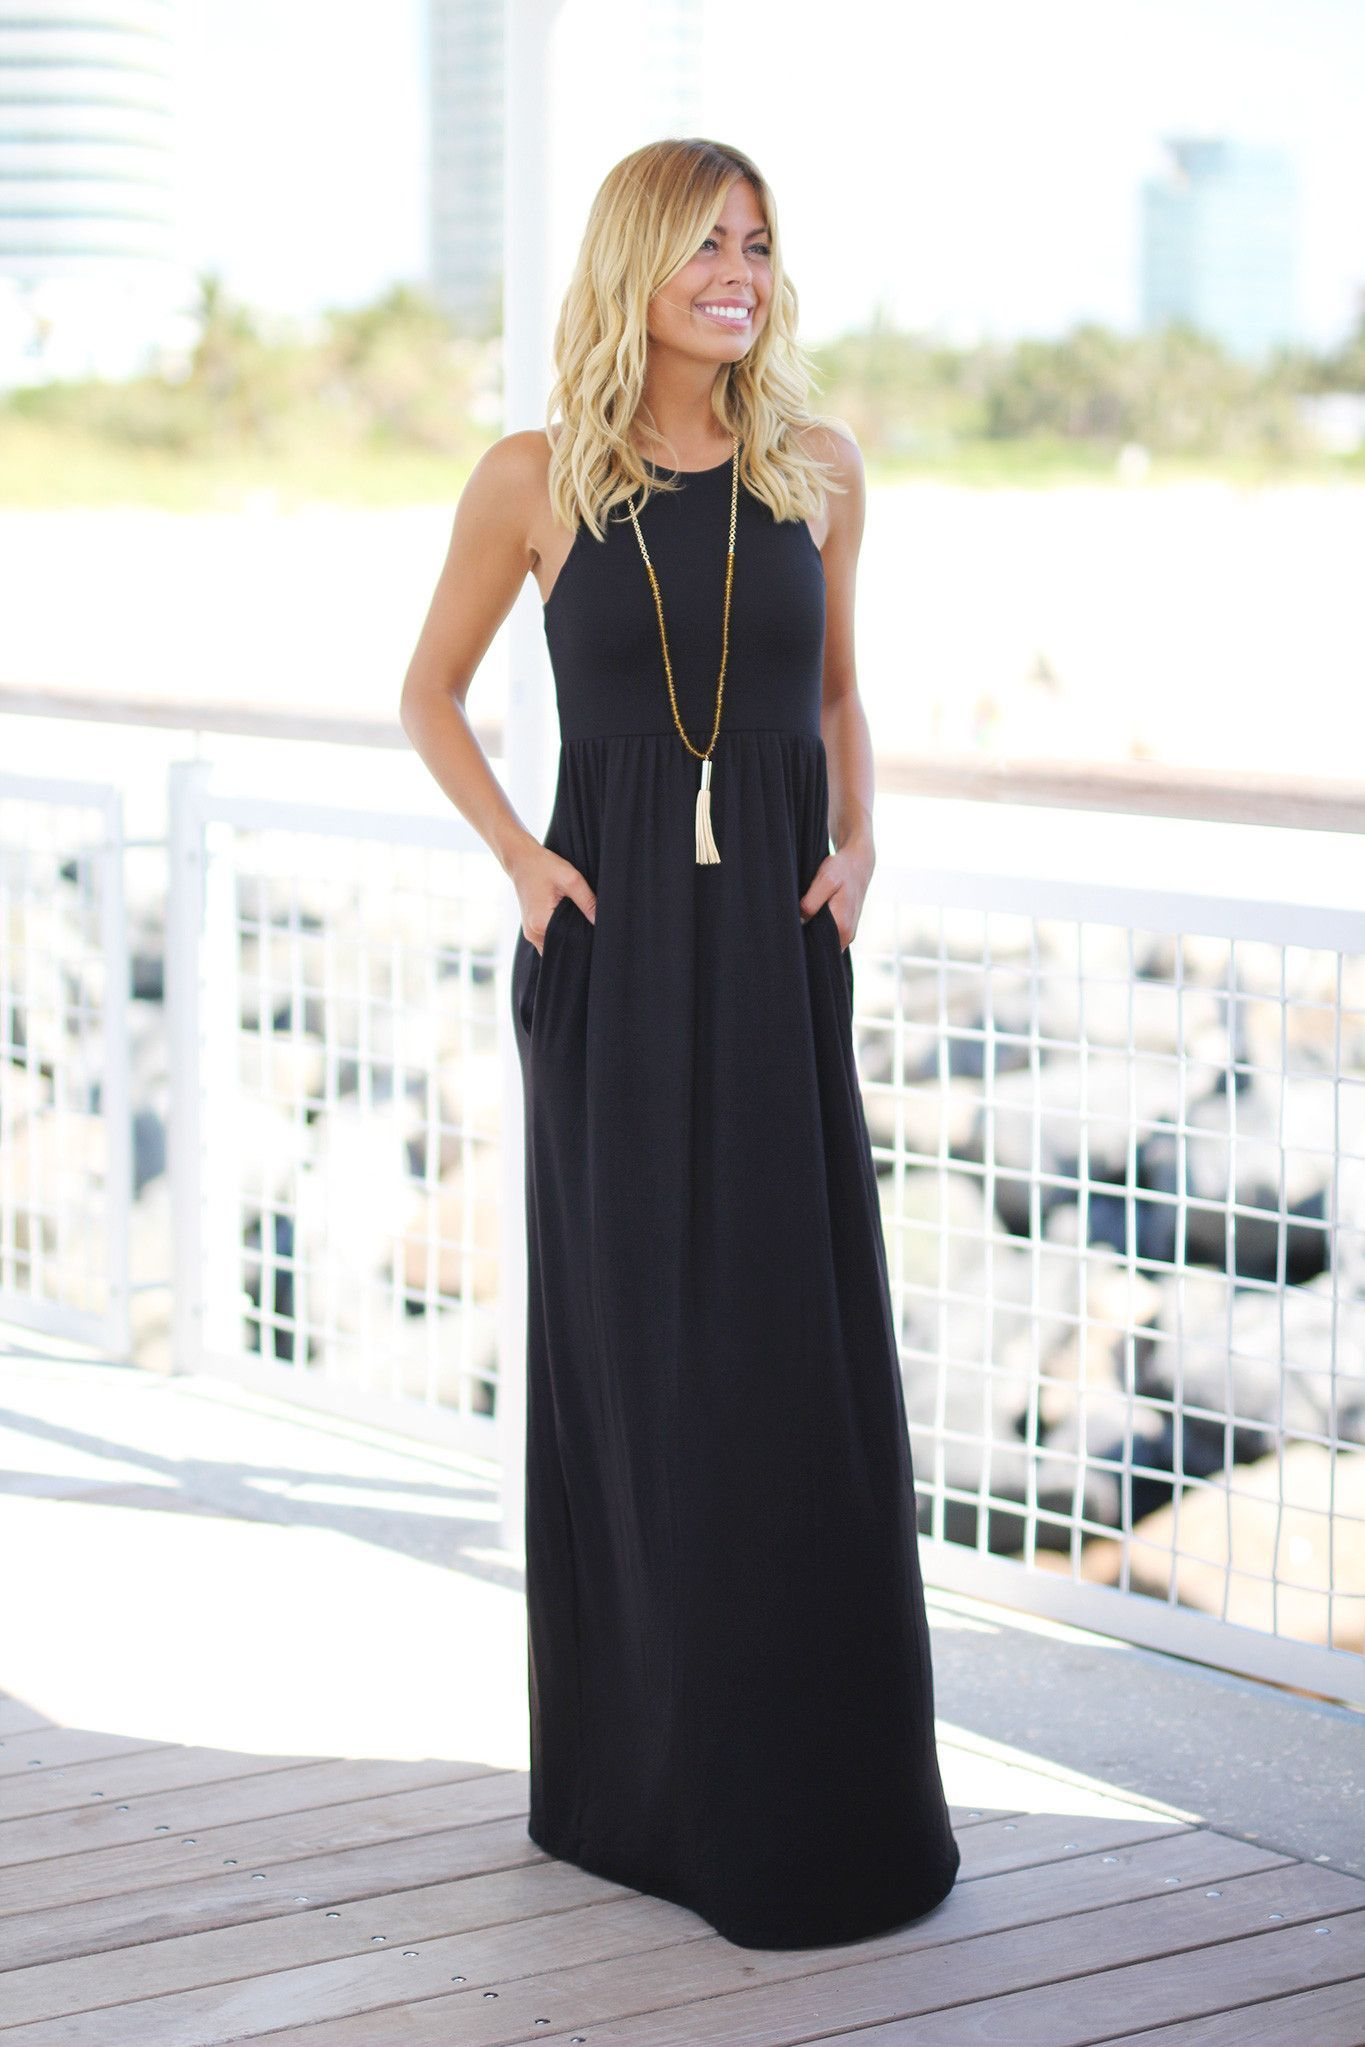 Back to basics! So happy that our Black Maxi Dress with Pockets is ...